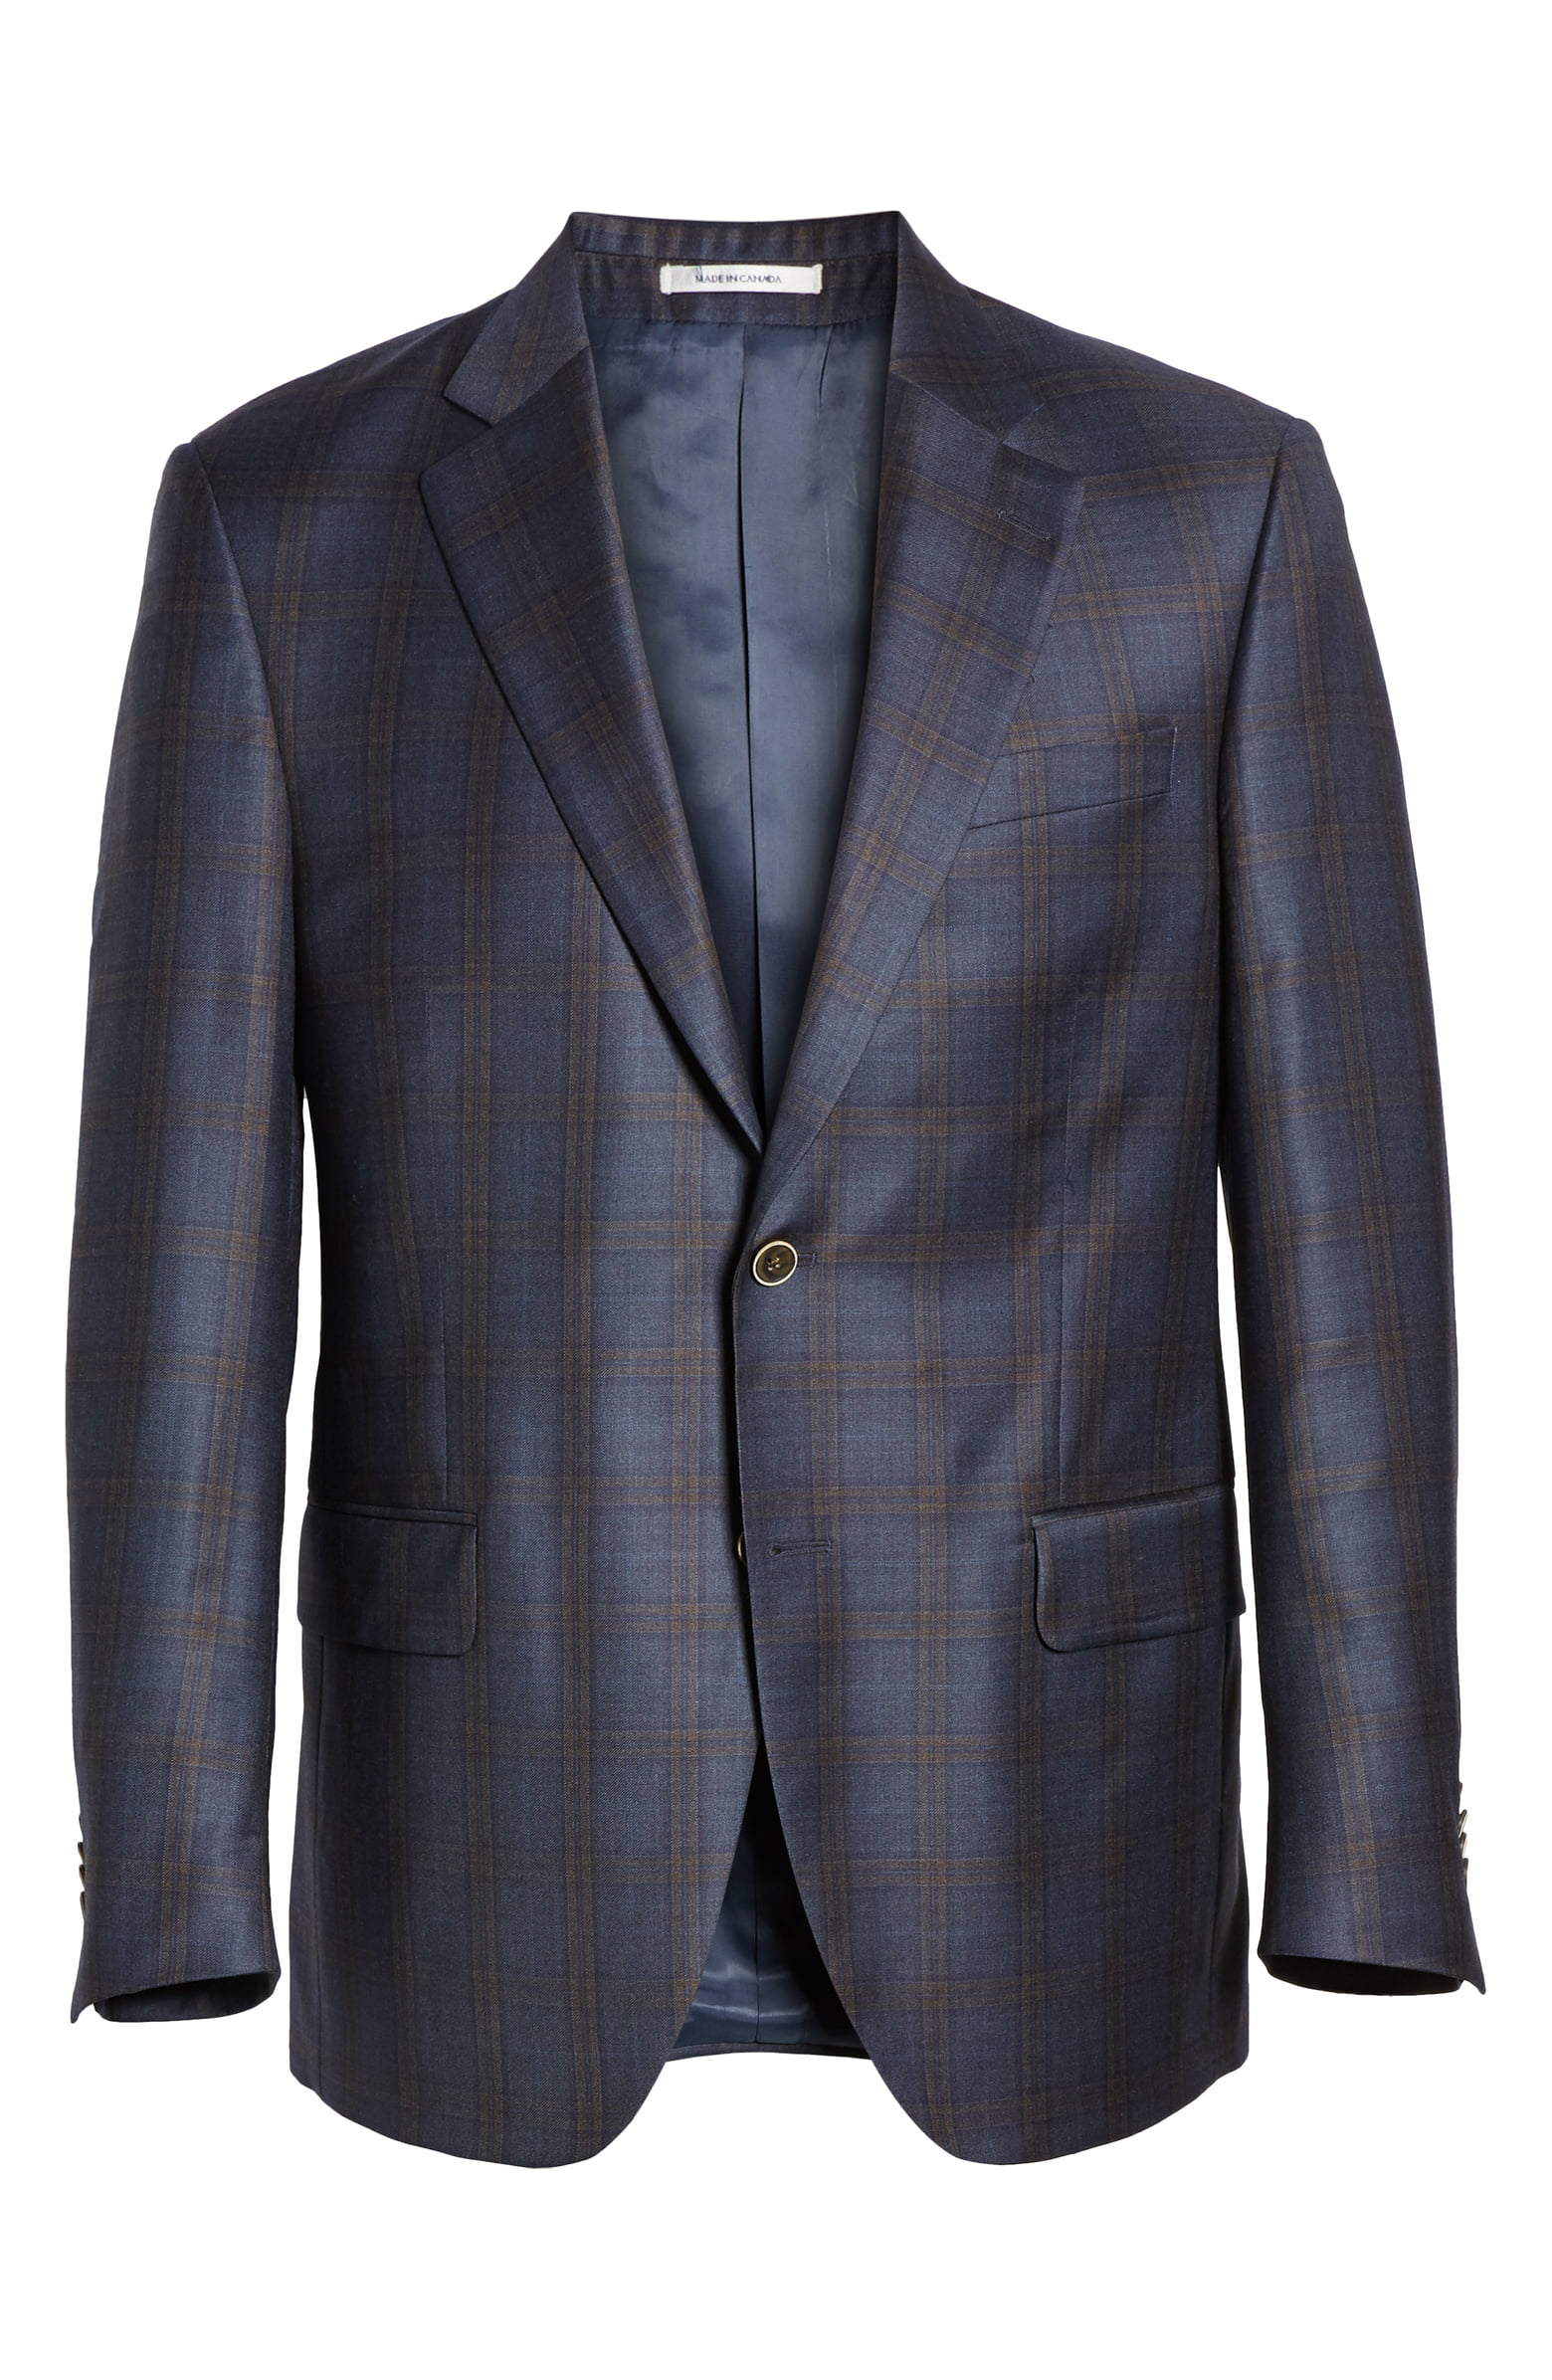 Flynn Plaid Wool Sport Coat - Peter Millar provides a high-class navy blazer with a pattern to elevate your aesthetic.